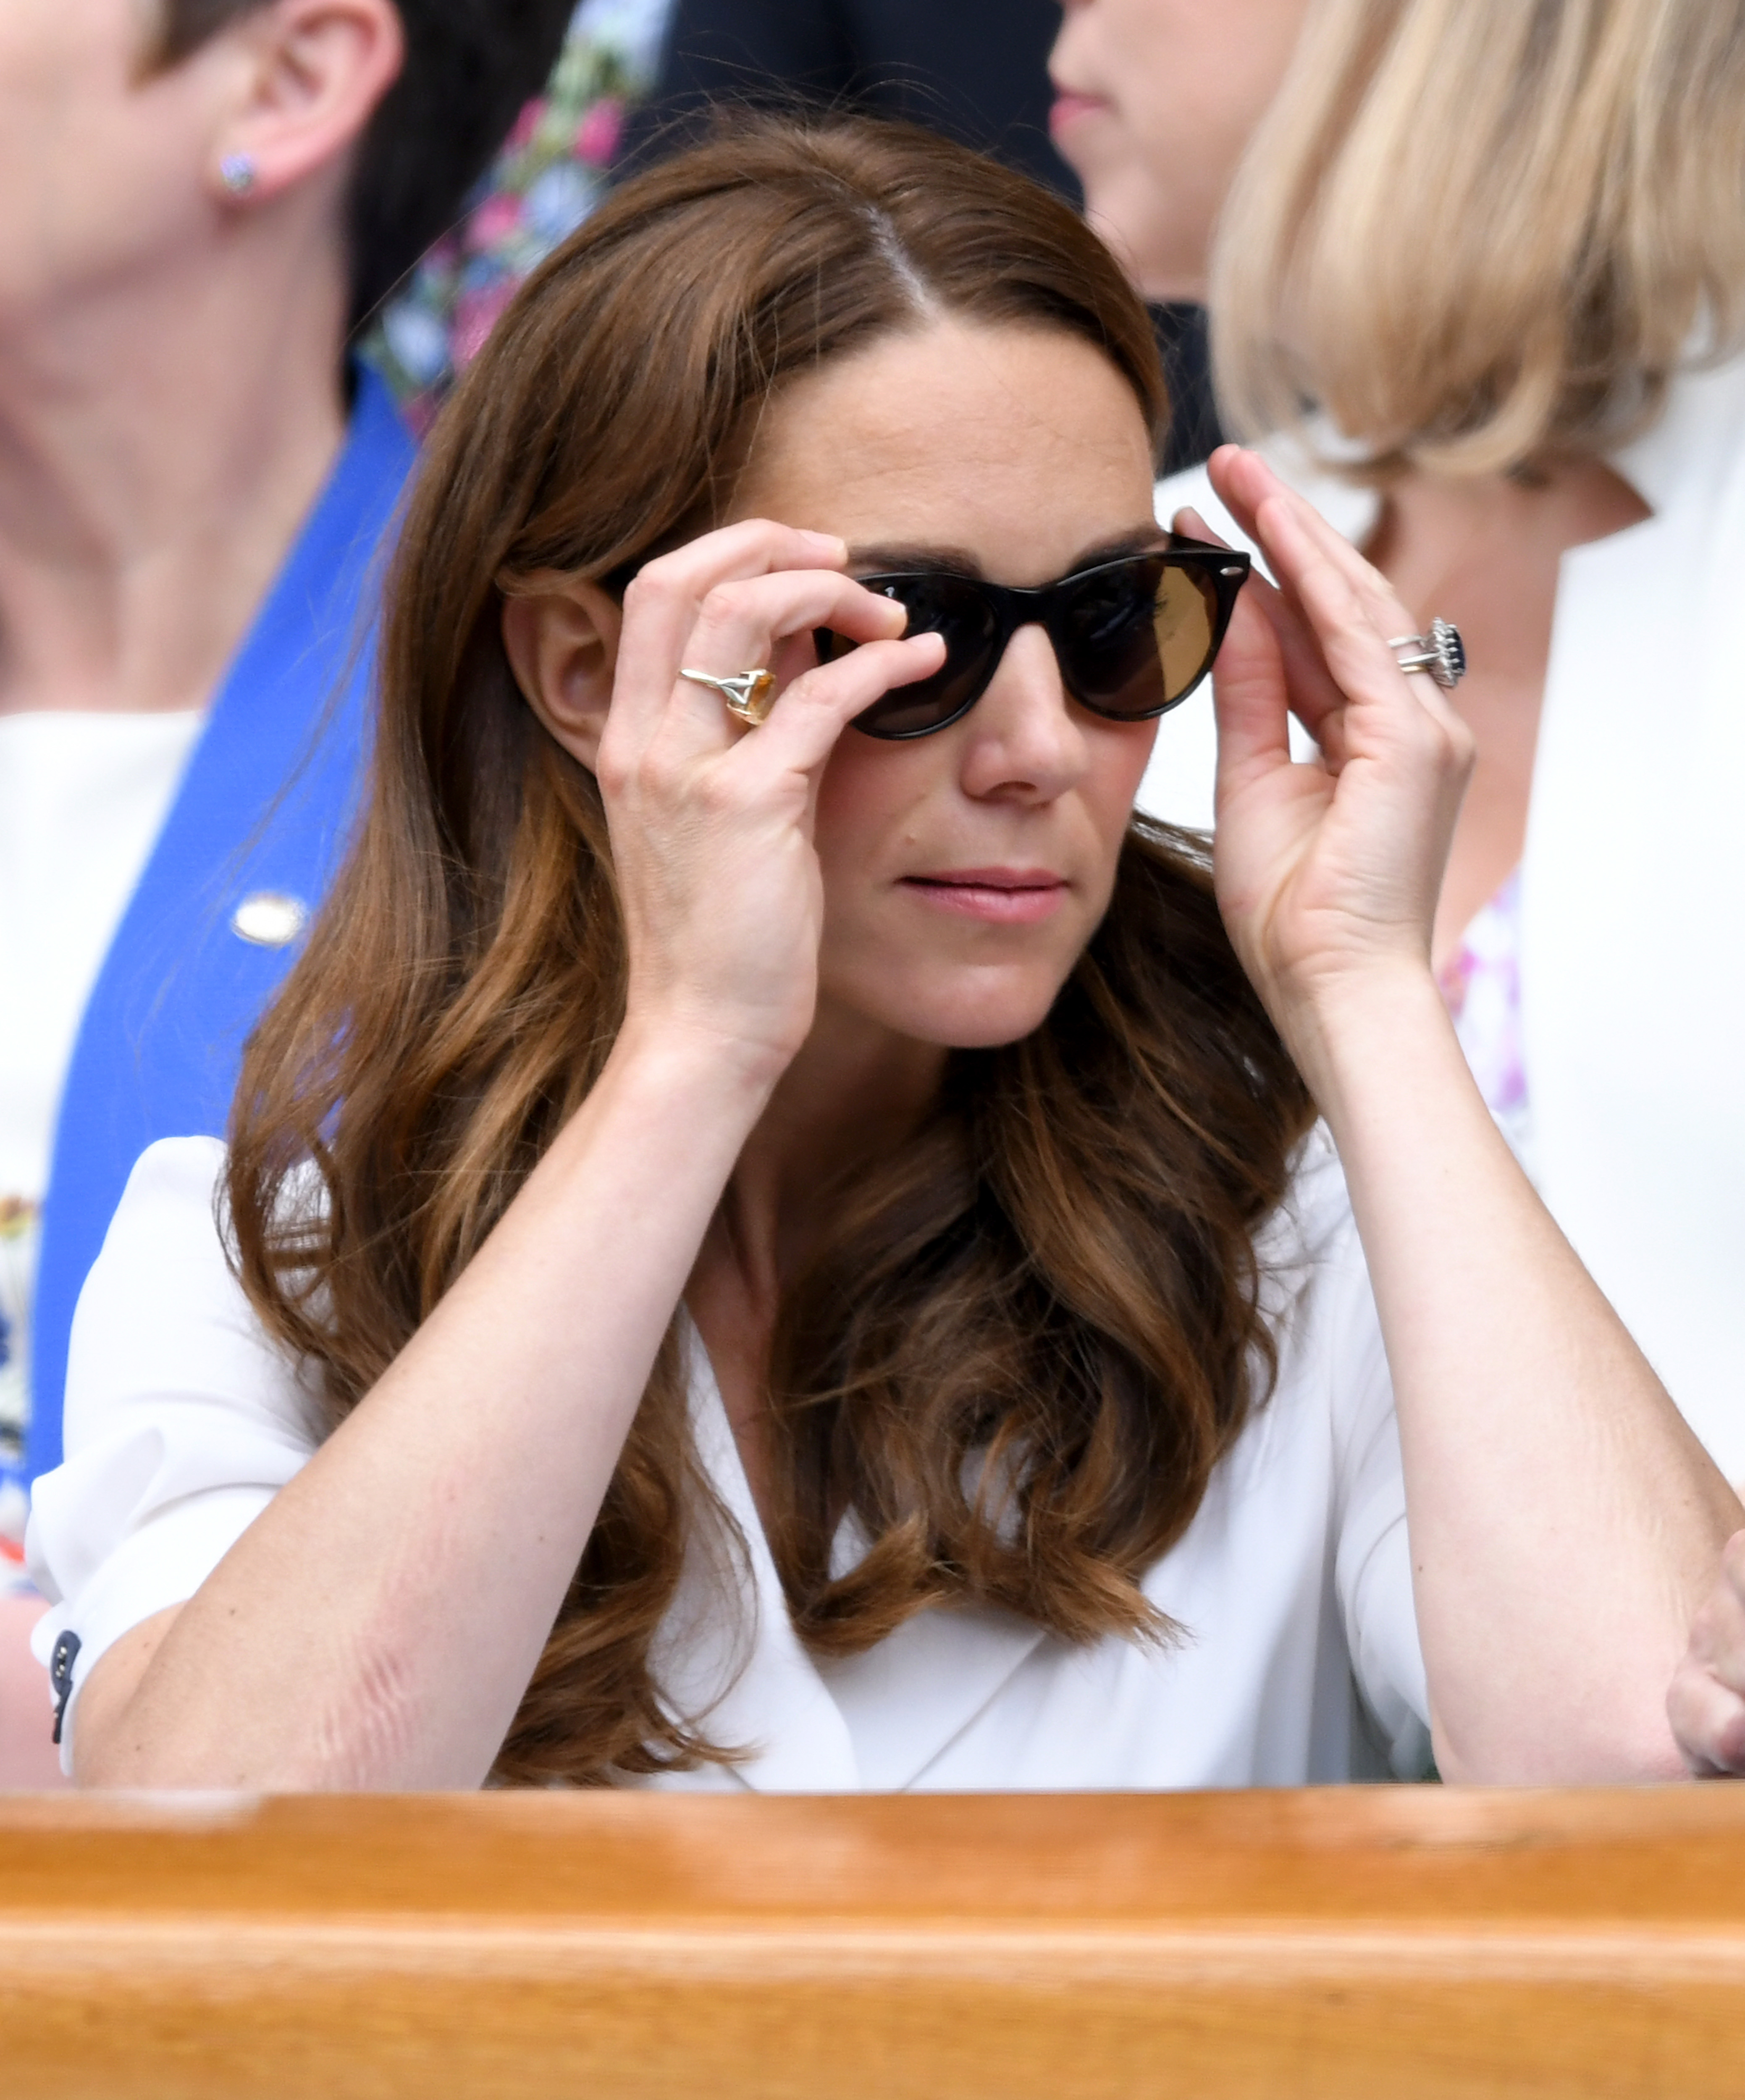 LONDON, ENGLAND - JULY 02: Catherine, Duchess of Cambridge adjusts her sunglasses as she attends day 2 of the Wimbledon Tennis Championships at the All England Lawn Tennis and Croquet Club on July 02, 2019 in London, England. (Photo by Karwai Tang/Getty Images)